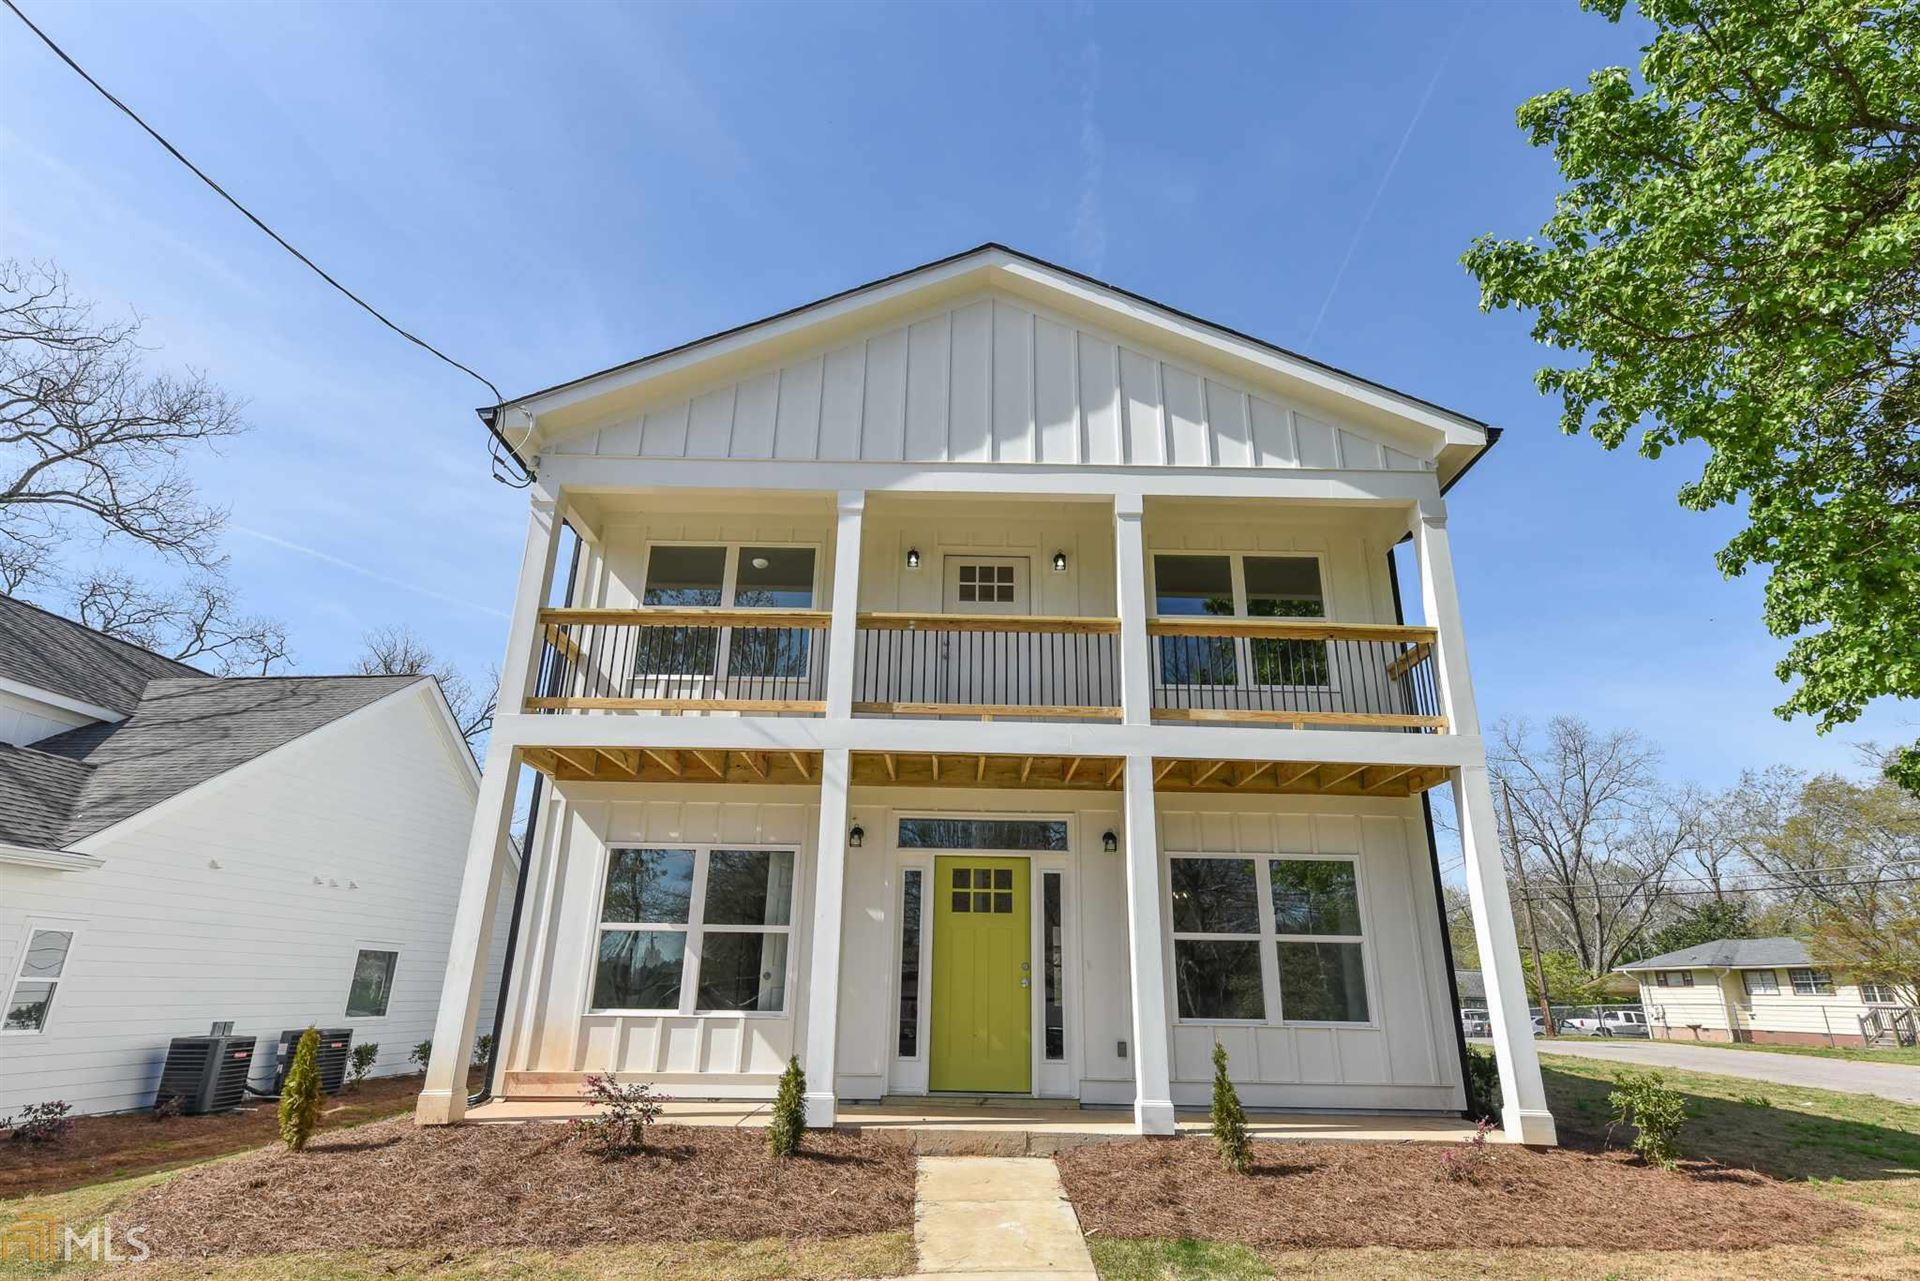 387 Rear First St, Athens, GA 30601 - #: 8758234